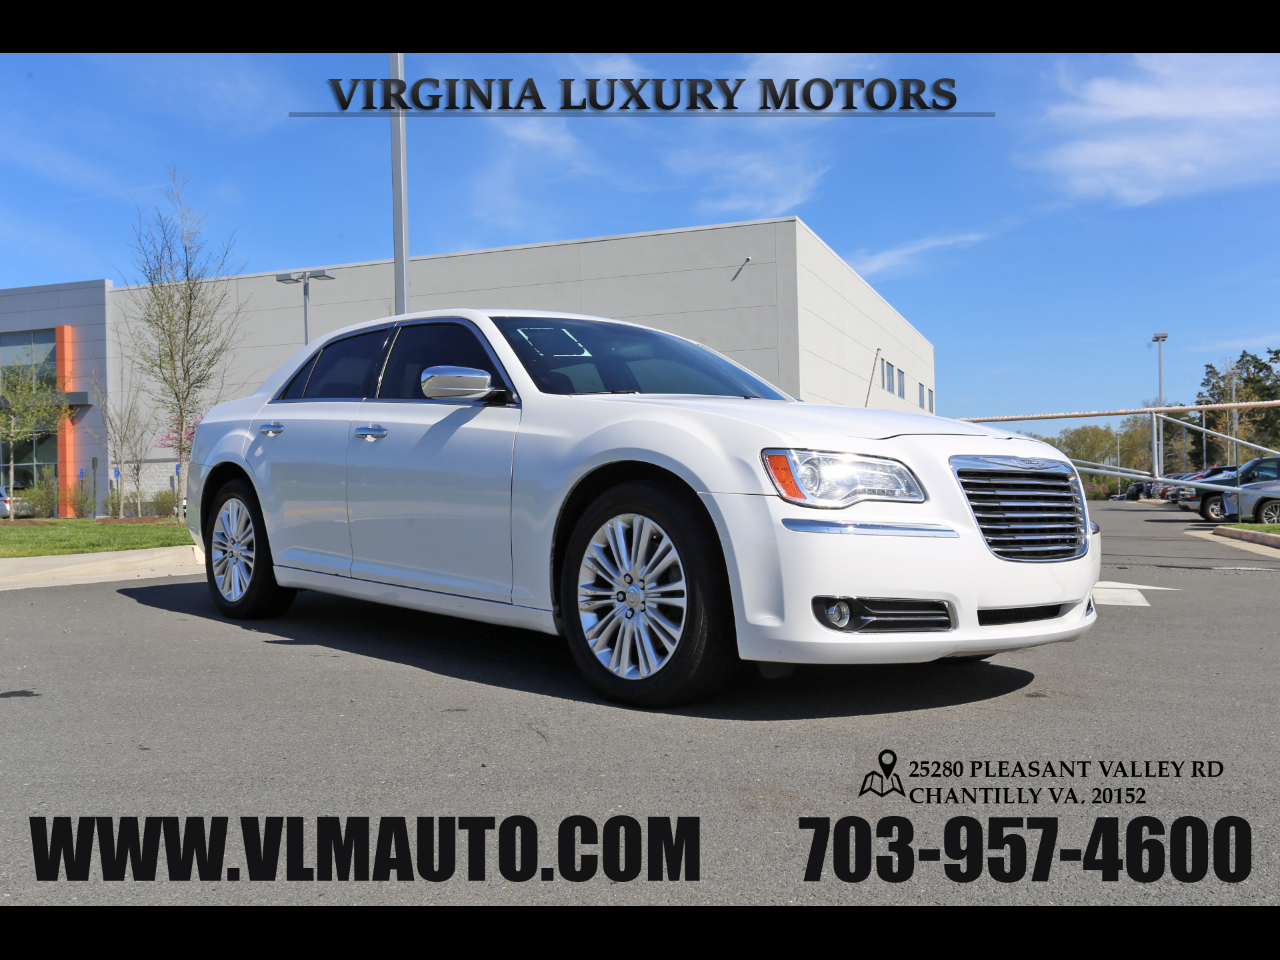 2012 Chrysler 300 4dr Sdn V6 Limited AWD